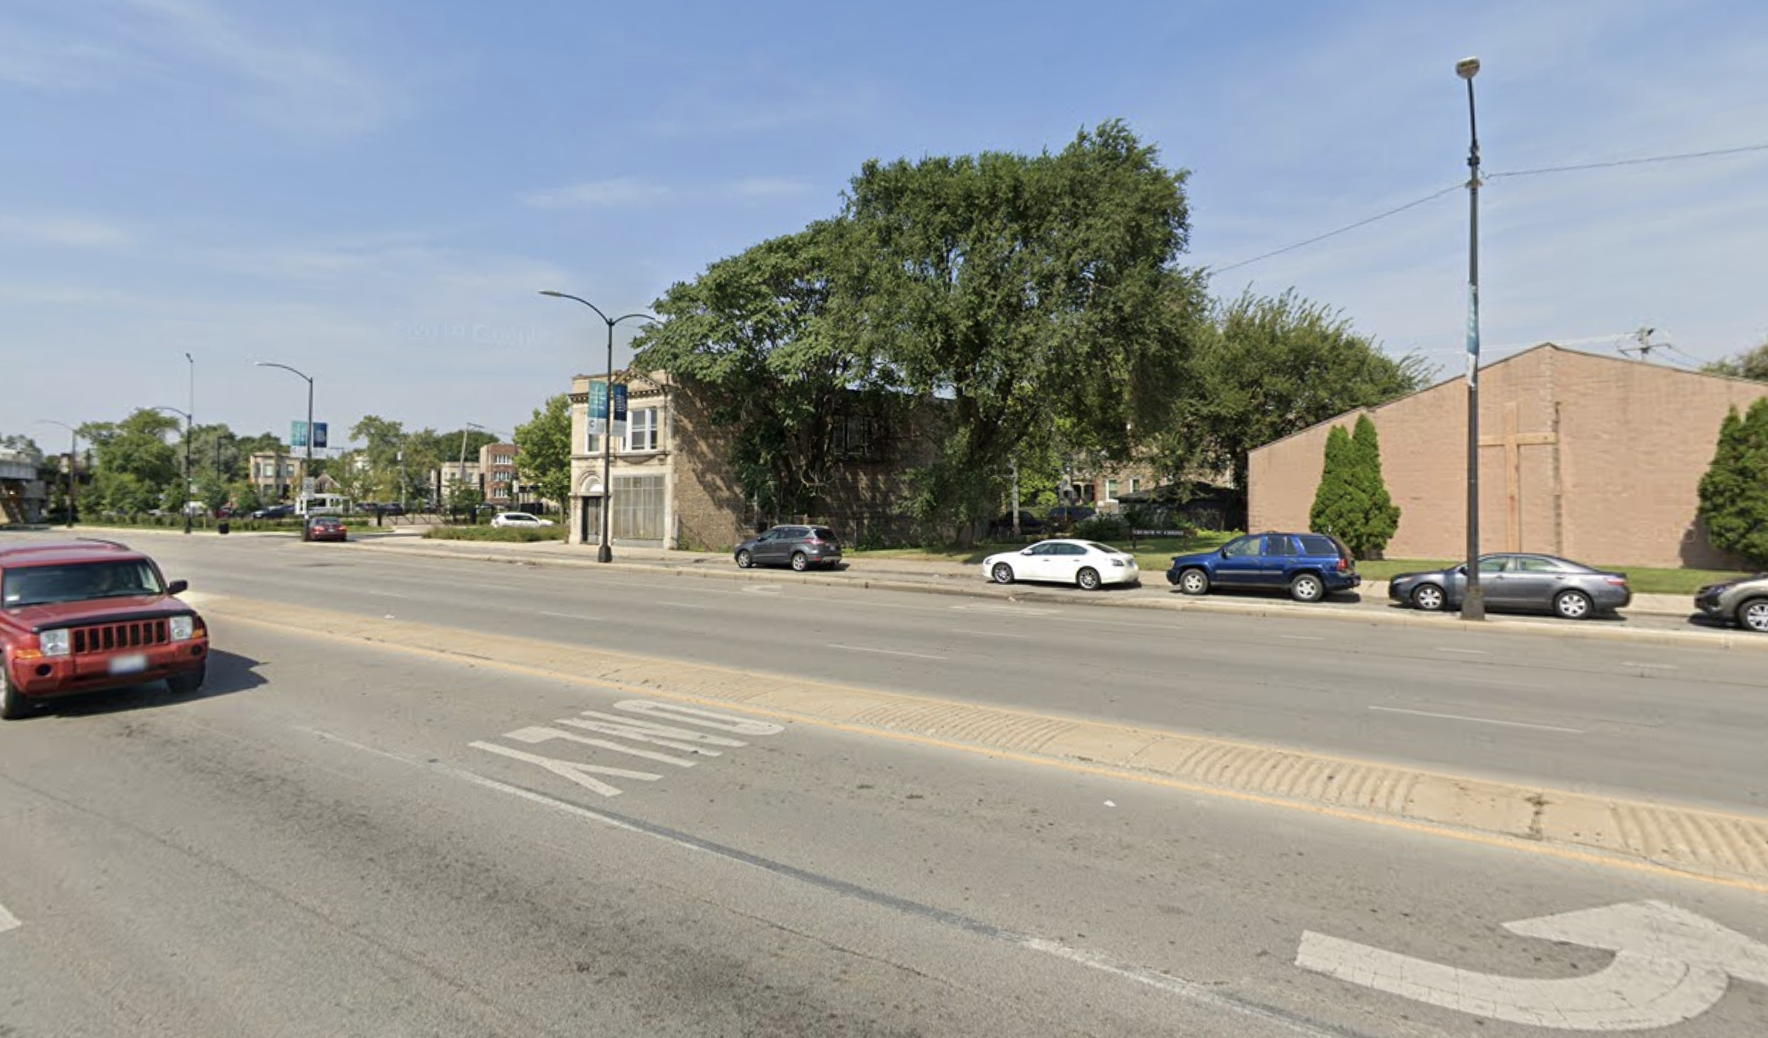 Robberies were reported in Lawndale, Homan Square